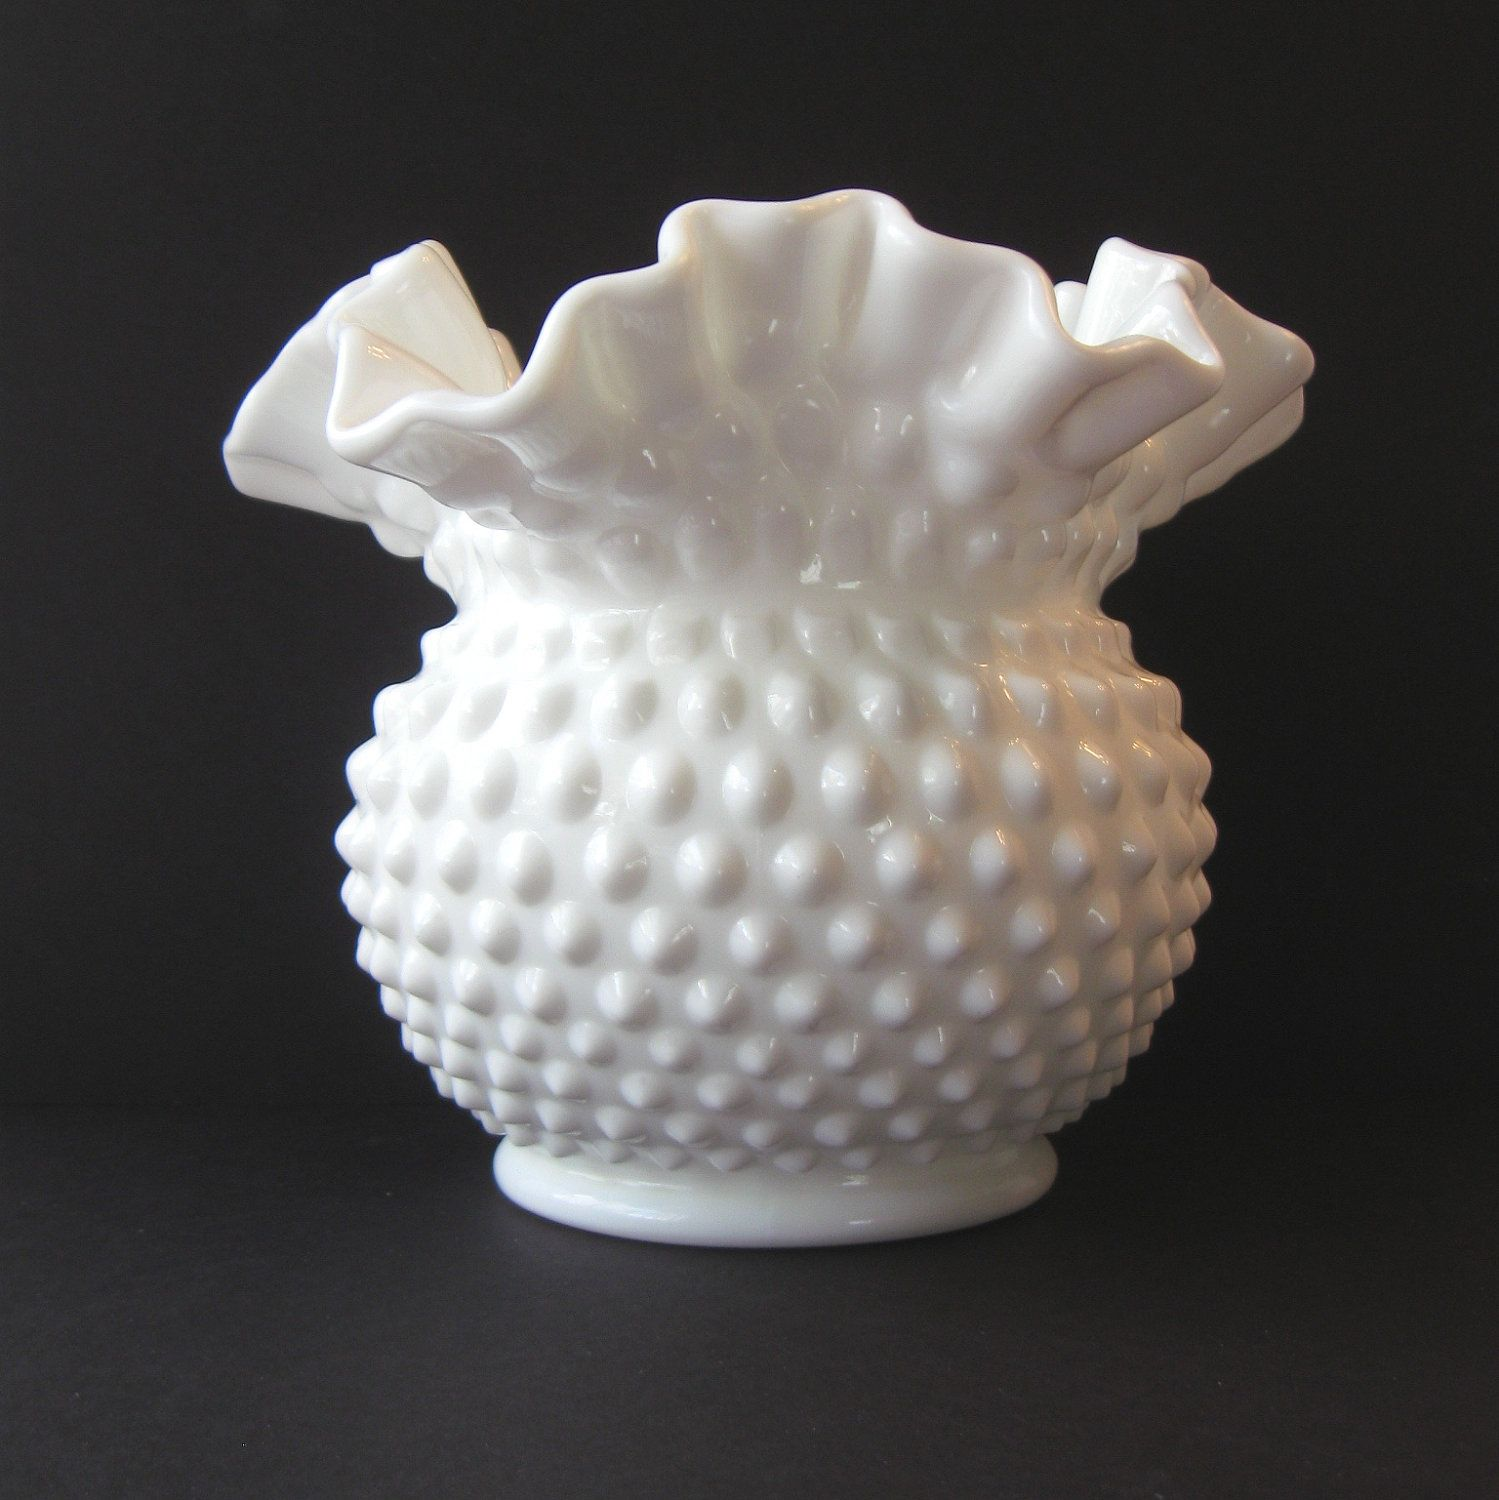 Fenton white hobnail milk glass ebay this item sold on may 31 image detail for fenton milk glass hobnail vase with ruffled by oldmotherscupboard reviewsmspy